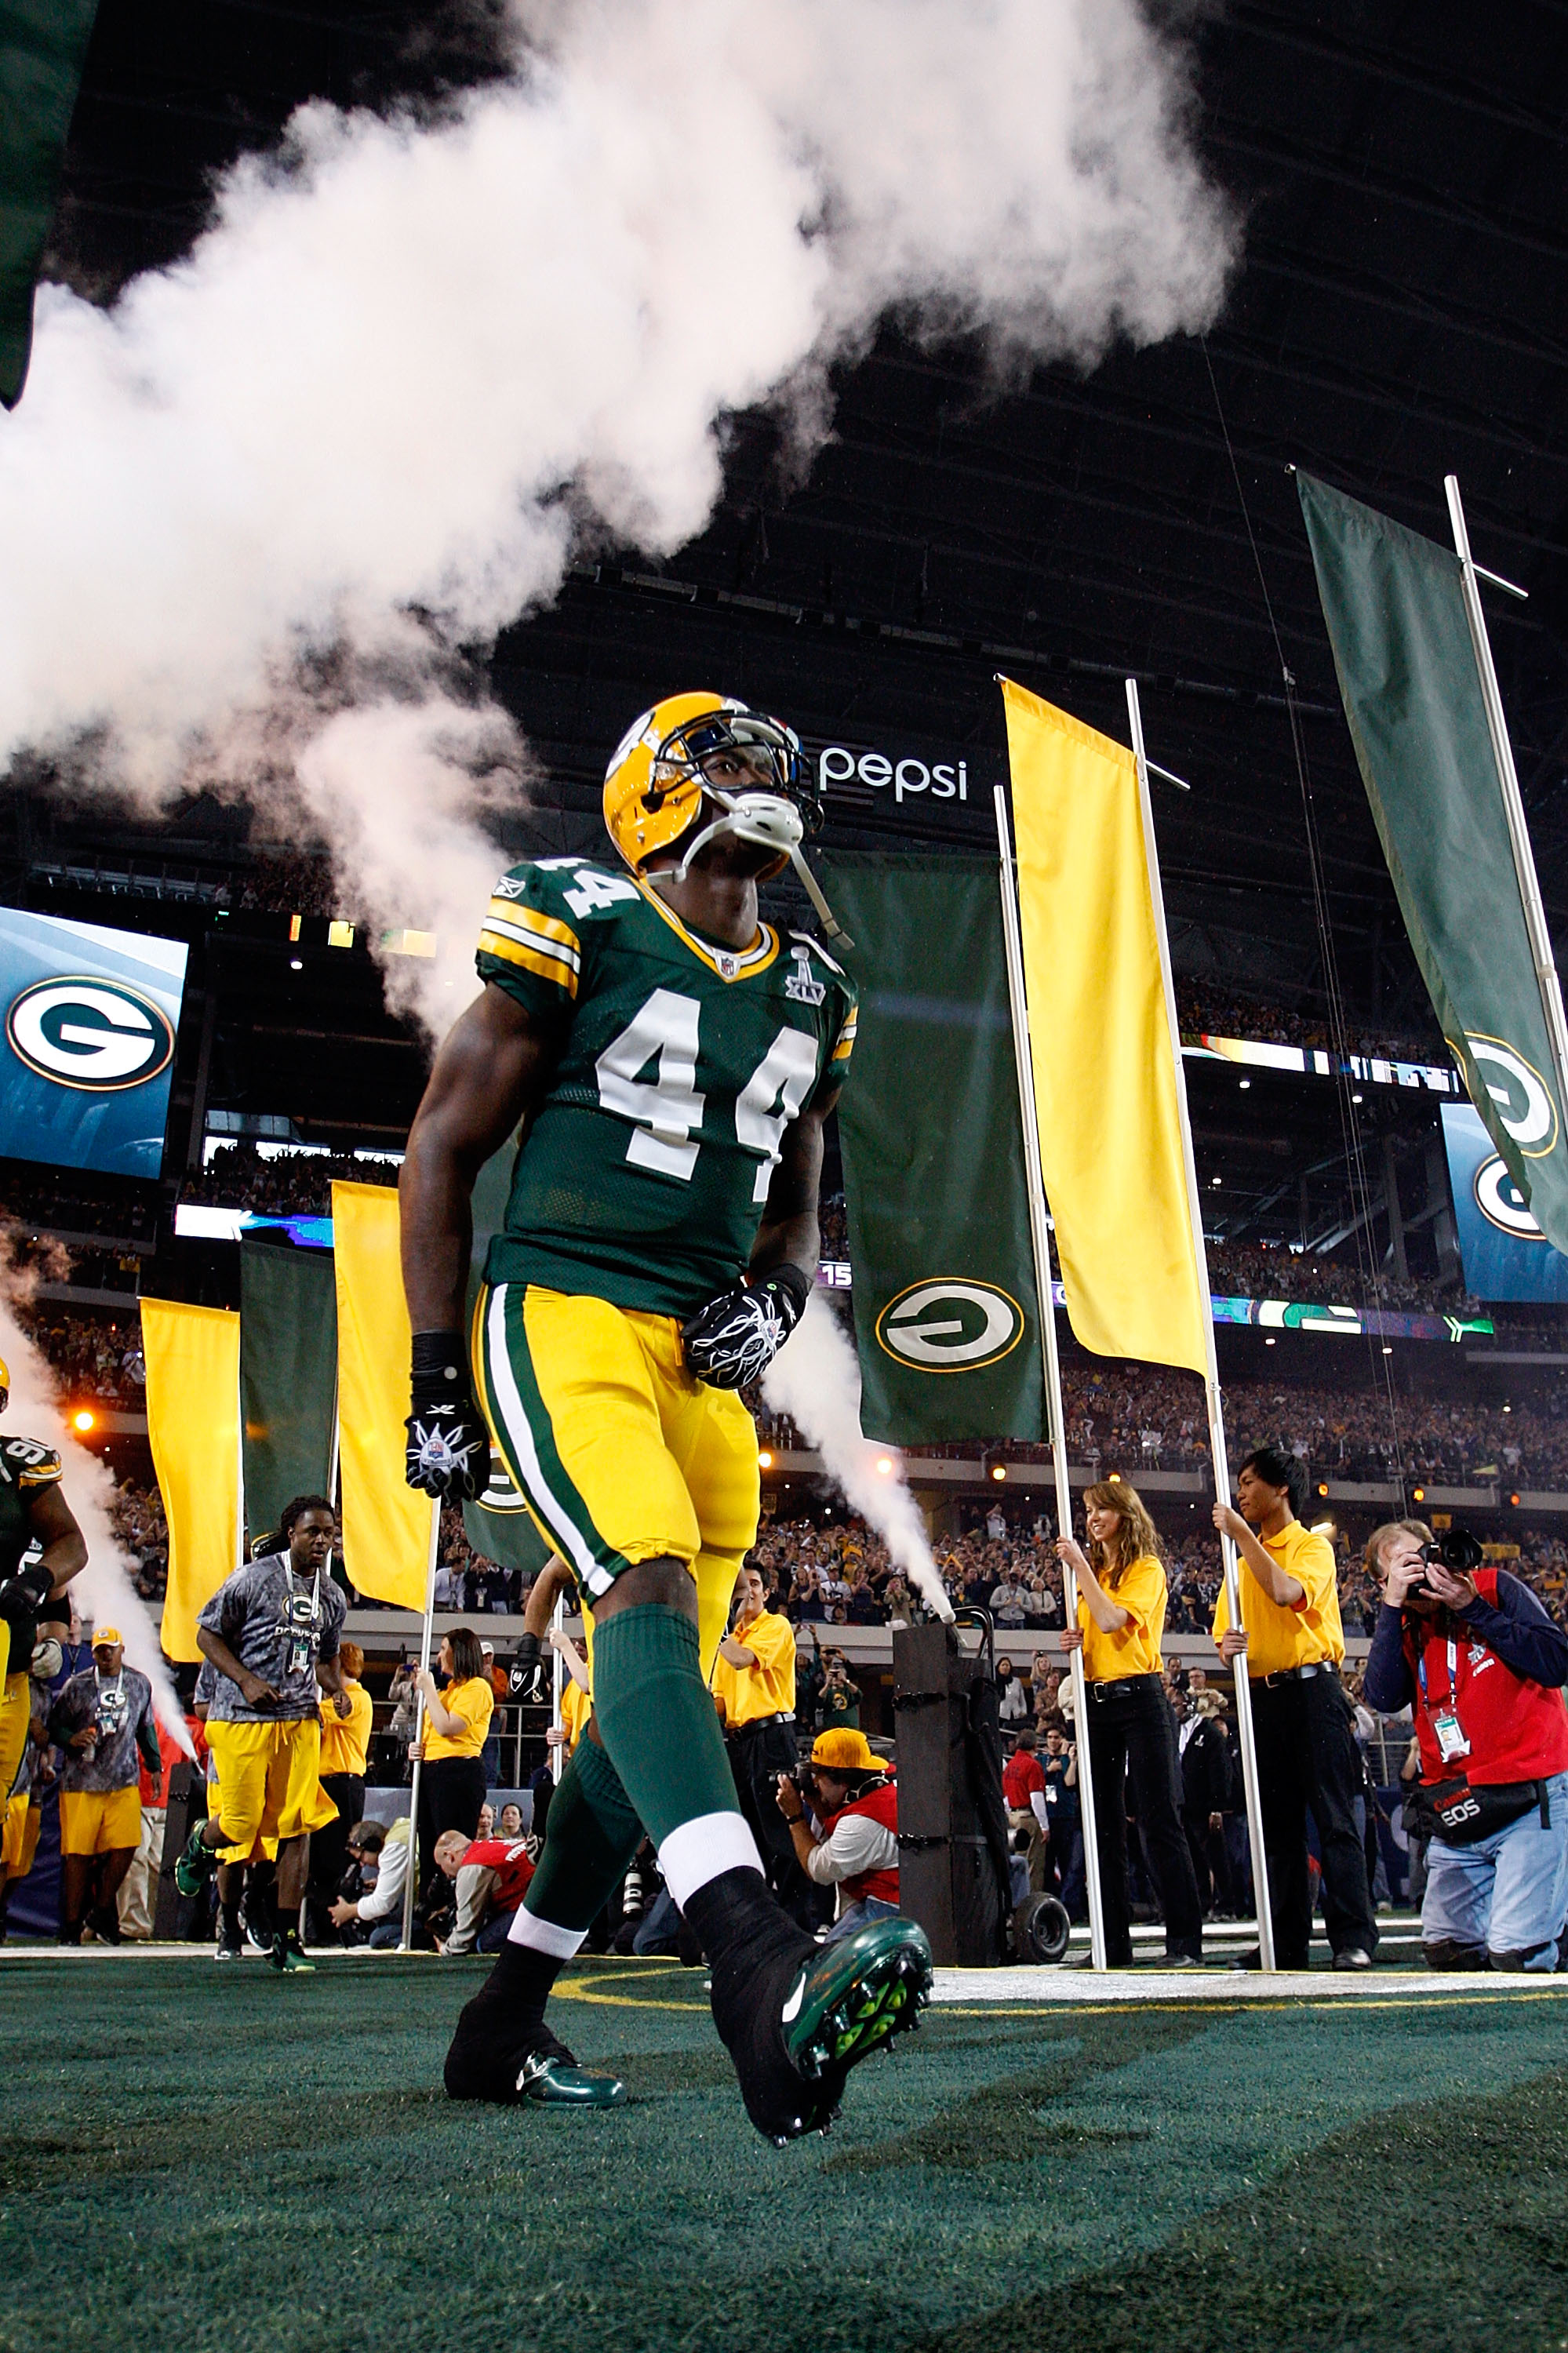 ARLINGTON, TX - FEBRUARY 06:  James Starks #44 of the Green Bay Packers runs onto the field during pregame introductions and festivities against the Pittsburgh Steelers during Super Bowl XLV at Cowboys Stadium on February 6, 2011 in Arlington, Texas.  (Ph